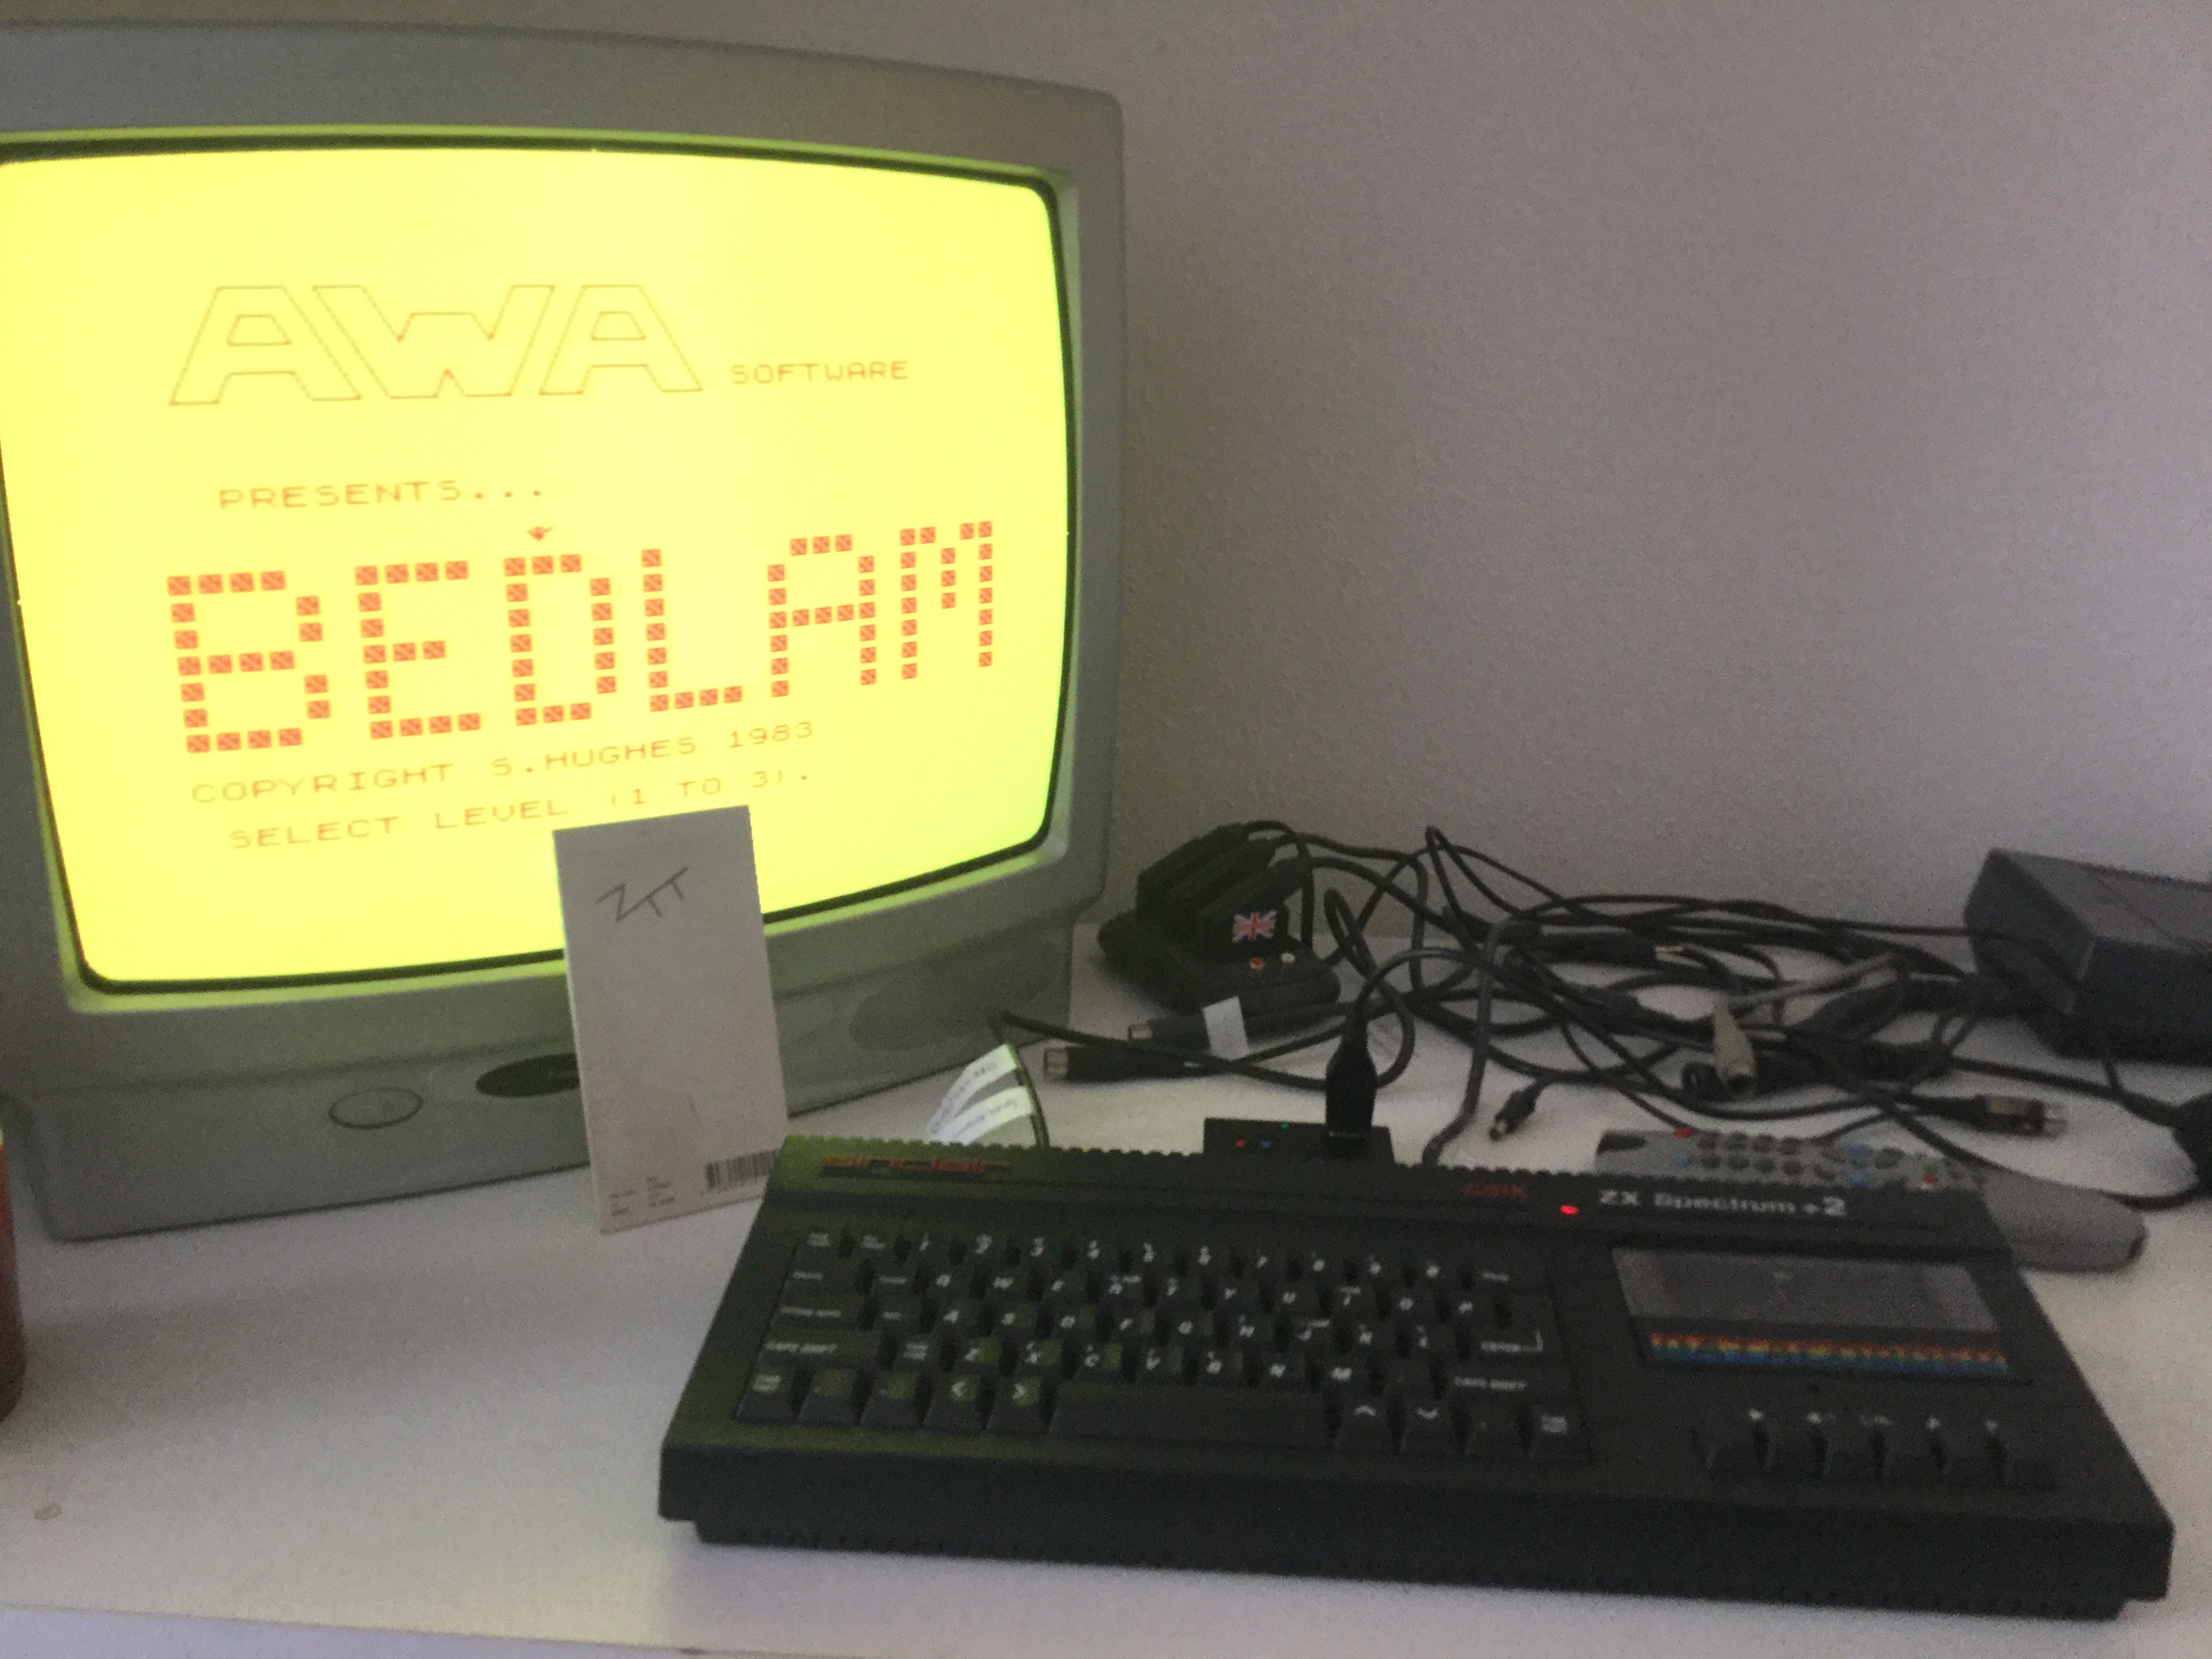 Frankie: Bedlam [AWA Software / MC Lothlorien] [Level 1] (ZX Spectrum) 670 points on 2018-03-01 06:19:47